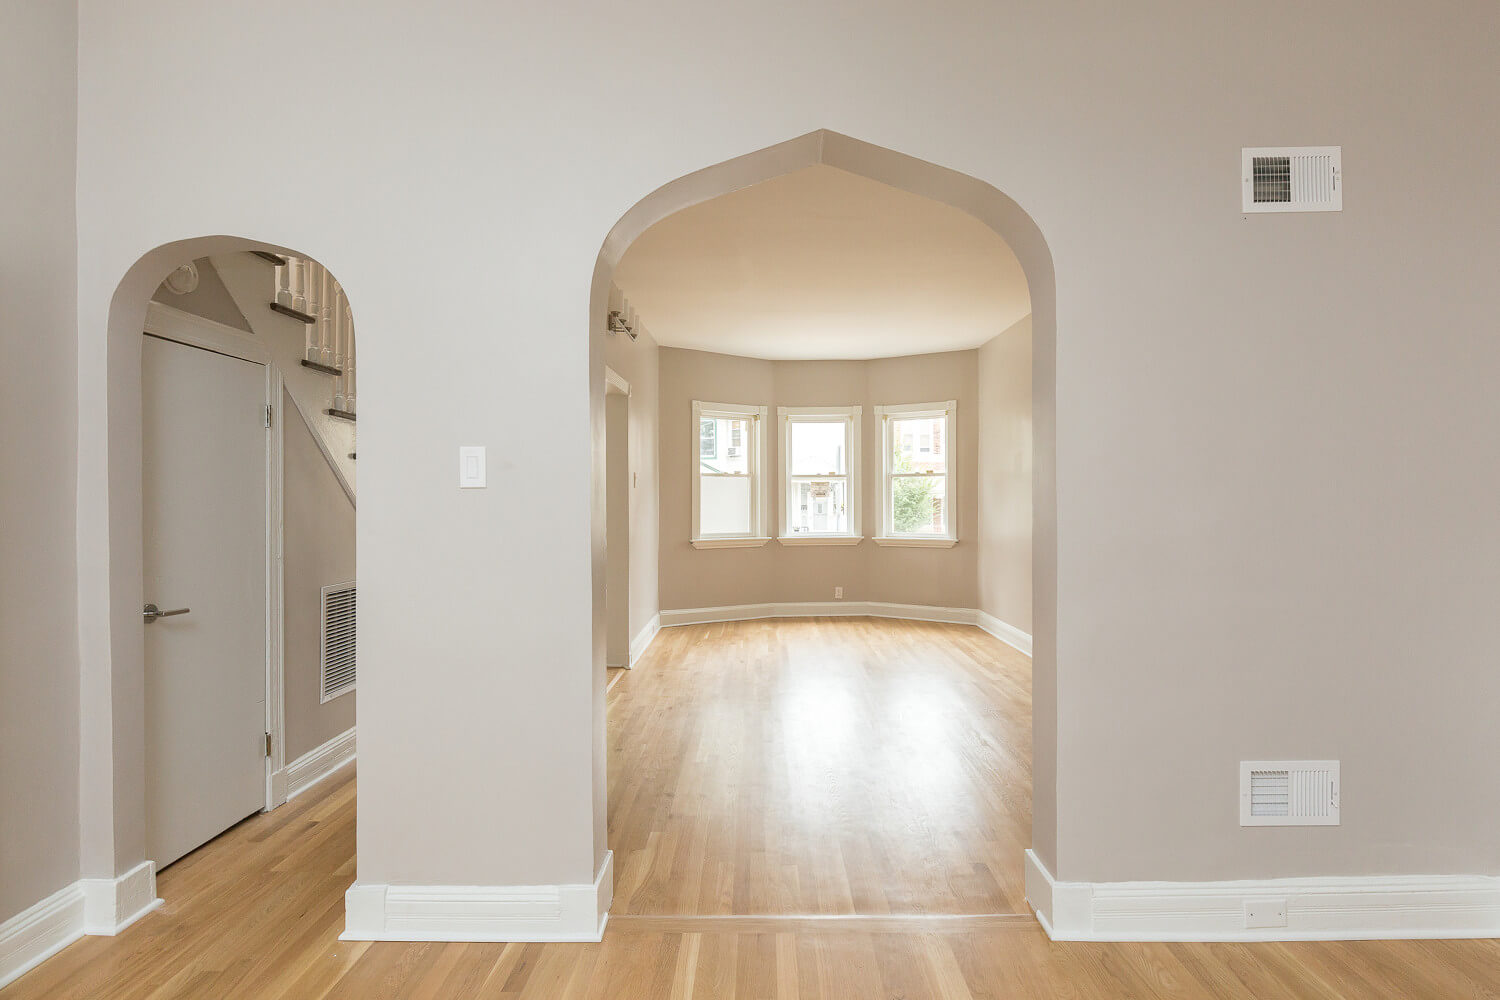 Image of completed Jersey City Heights, NJ remodel